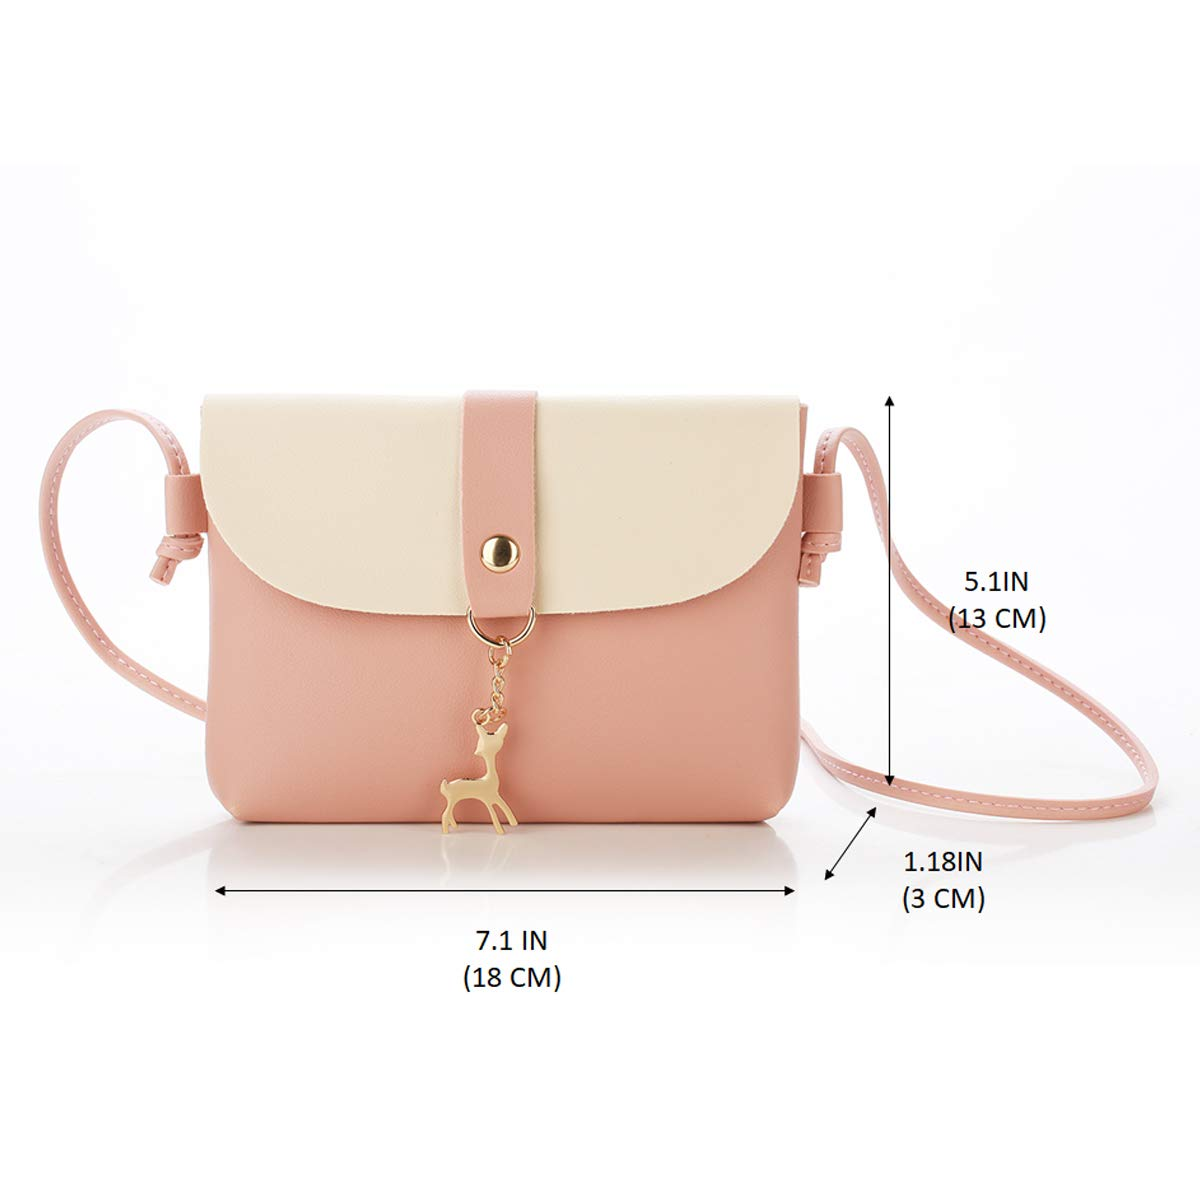 Small Crossbody Purse for Women With Pendant,PU Leather Crossbody Bag With Strap Cell Phone Bag for Girl,Pink by Lanling (Image #2)